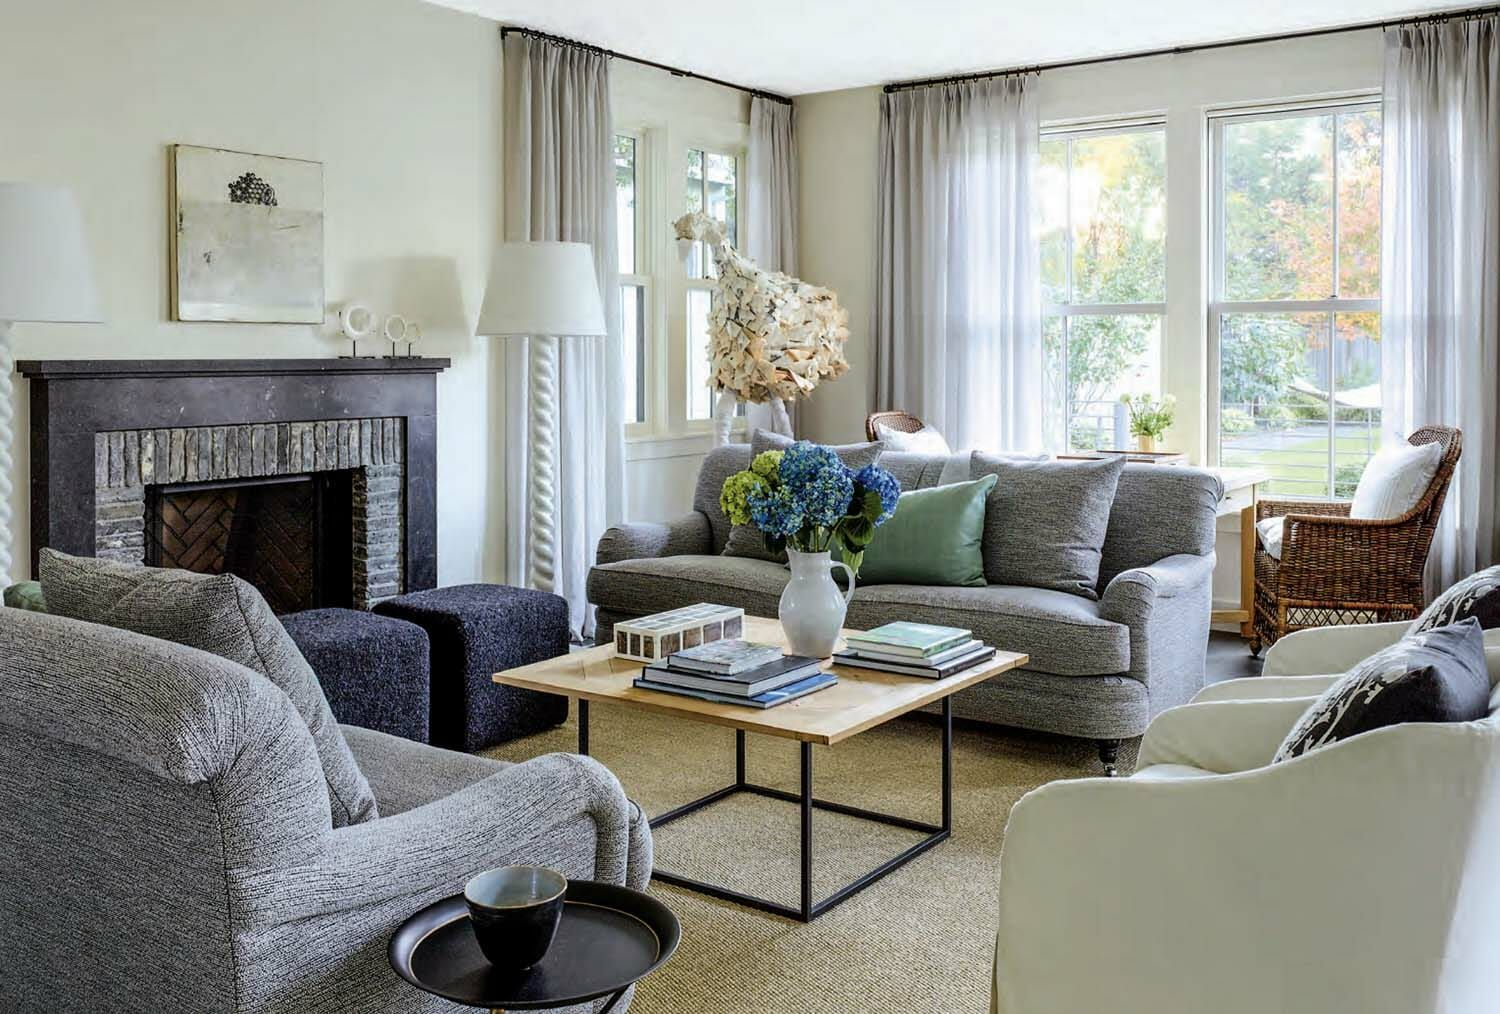 Warm and inviting farmhouse stye home in the San Francisco Bay Area is part of Traditional Warm Living Room - Designed by Feldman Architecture, this farmhouse style home mixes traditional styles with clean lines, located in Palo Alto, a city in California's San Francisco Bay Area